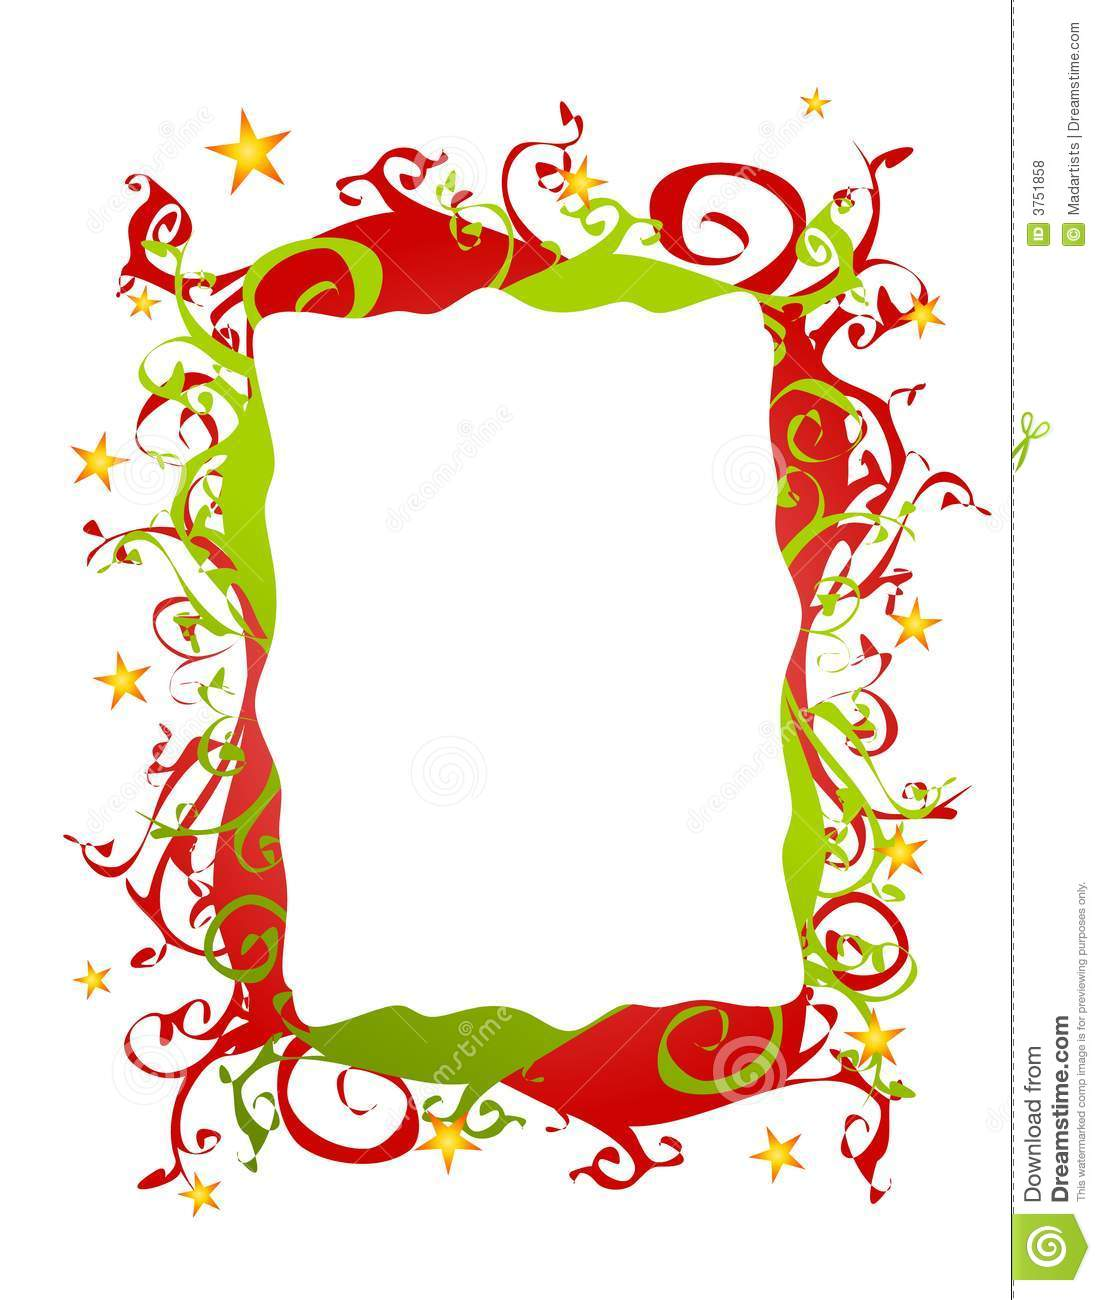 abstract folksy christmas border or frame - Christmas Borders Free